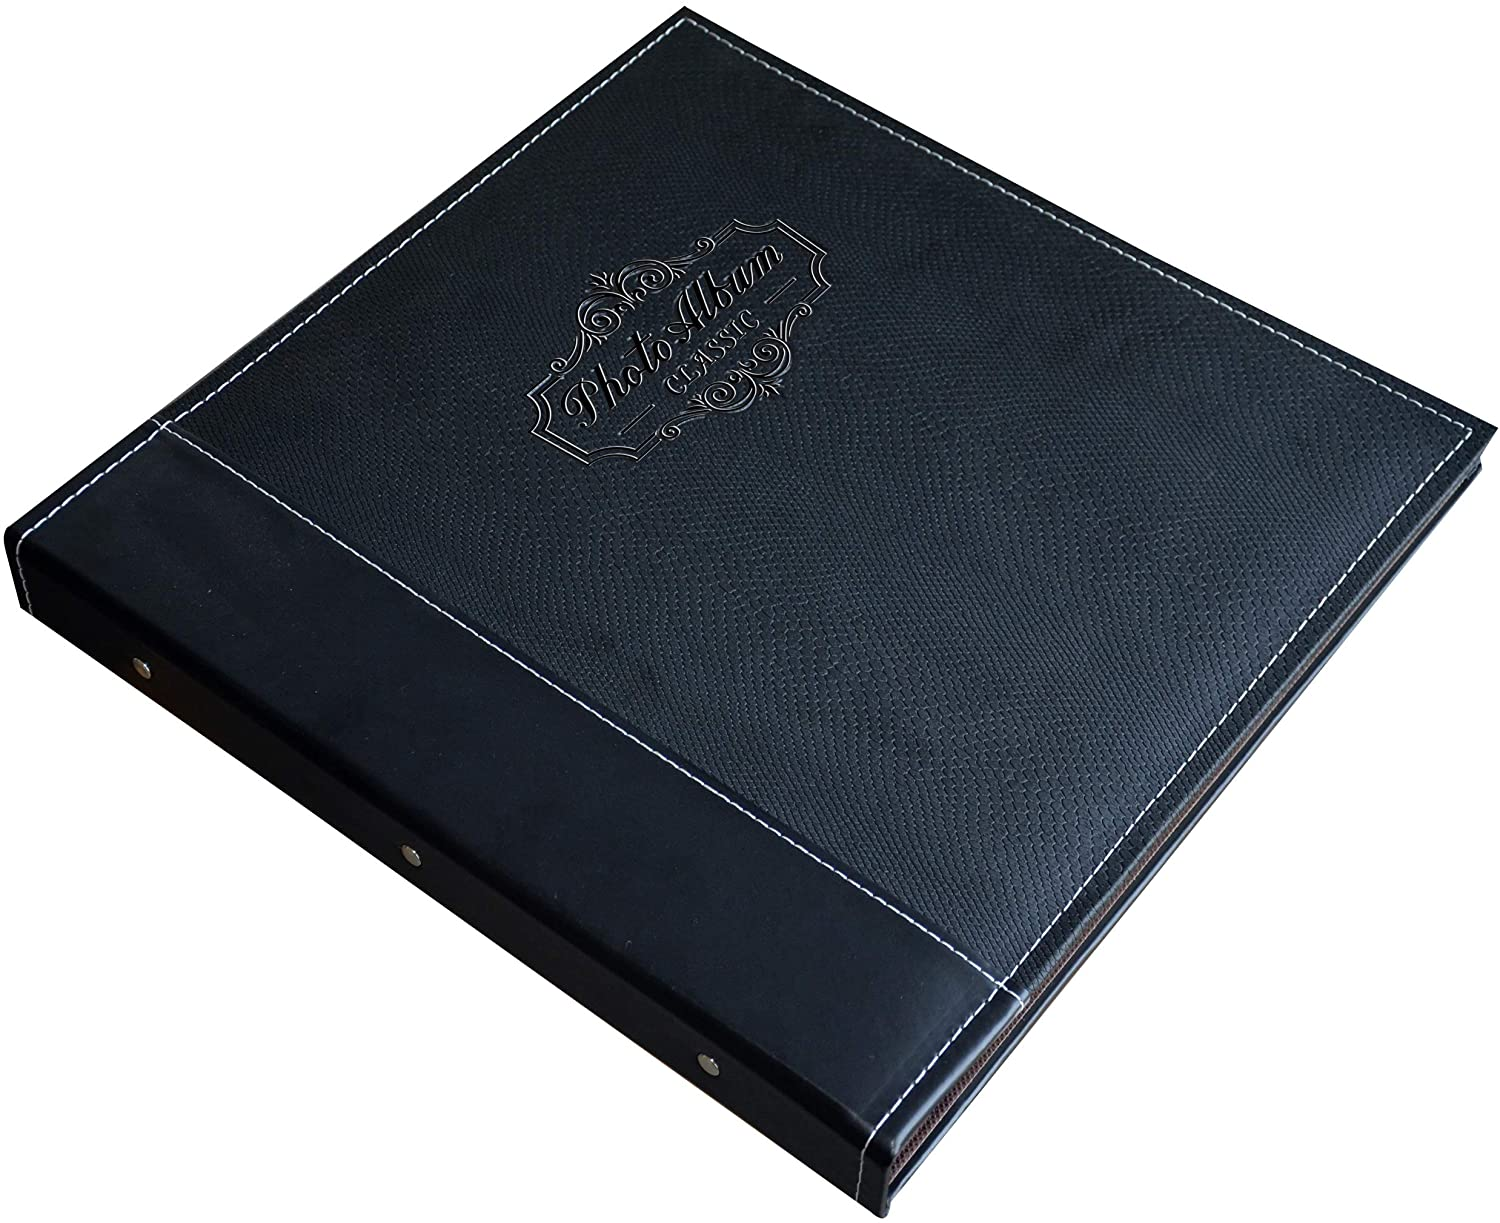 Leather Cover Magnetic Self-Stick Page 4X6 Black, Large Hand Made DIY Albums 6X8 8X10 Photos Zoview Art Photo Album Holds 3X5 5X7